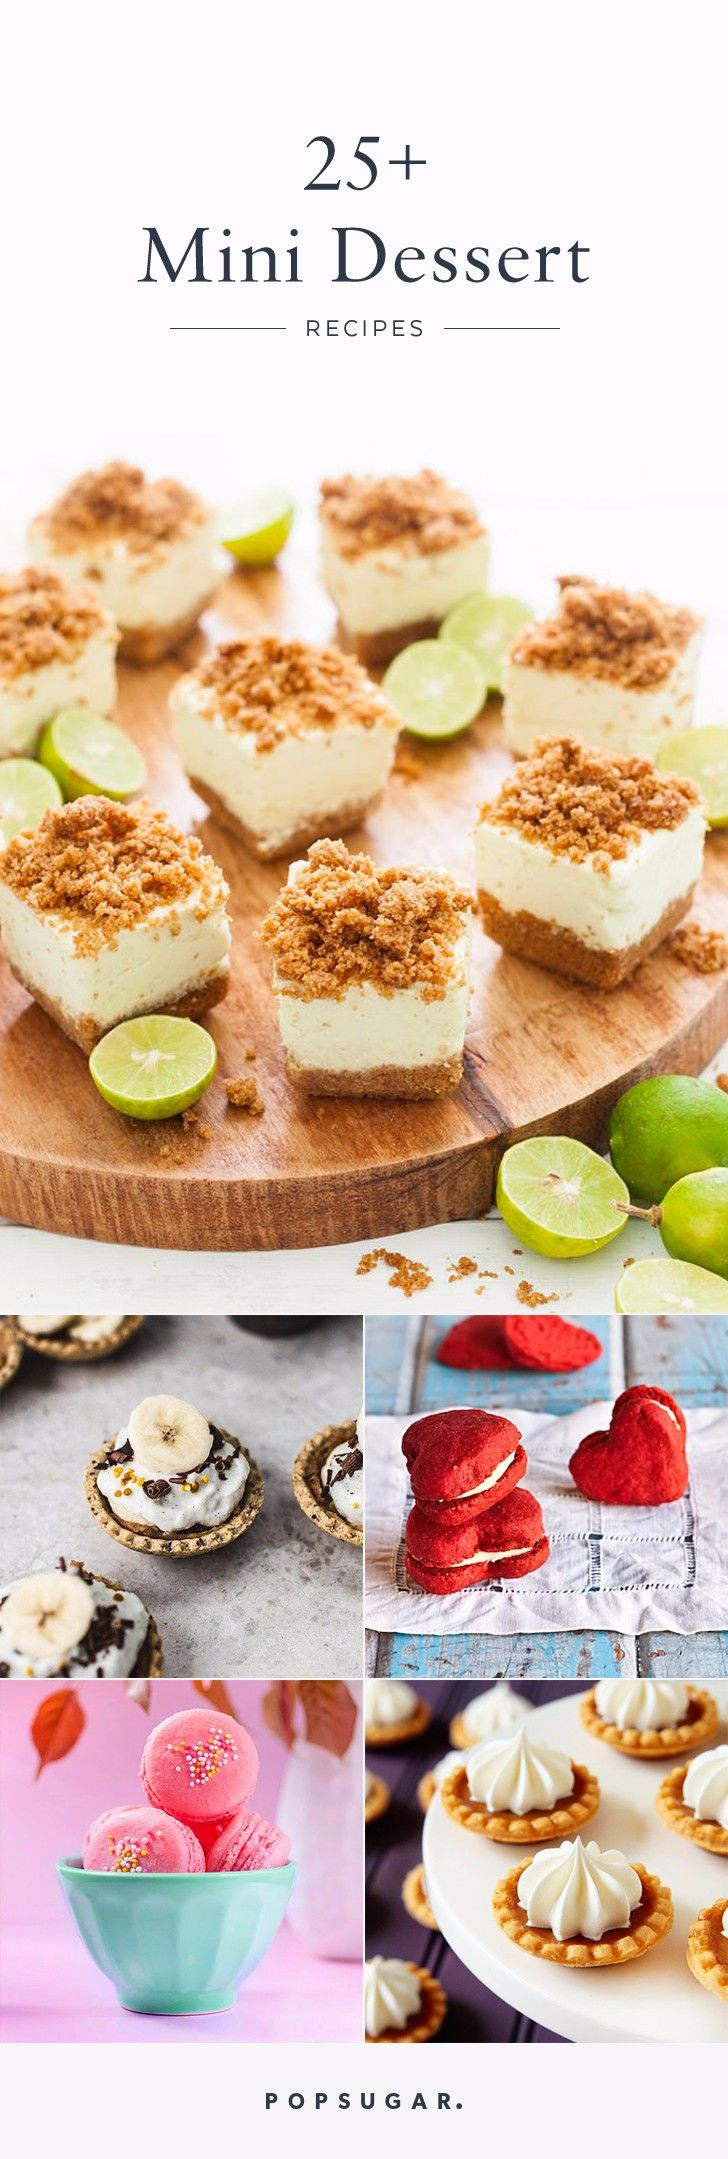 Whether you're hosting a party or just love all things bite-size, these mini dessert recipes are right up your alley and perfect for any season.